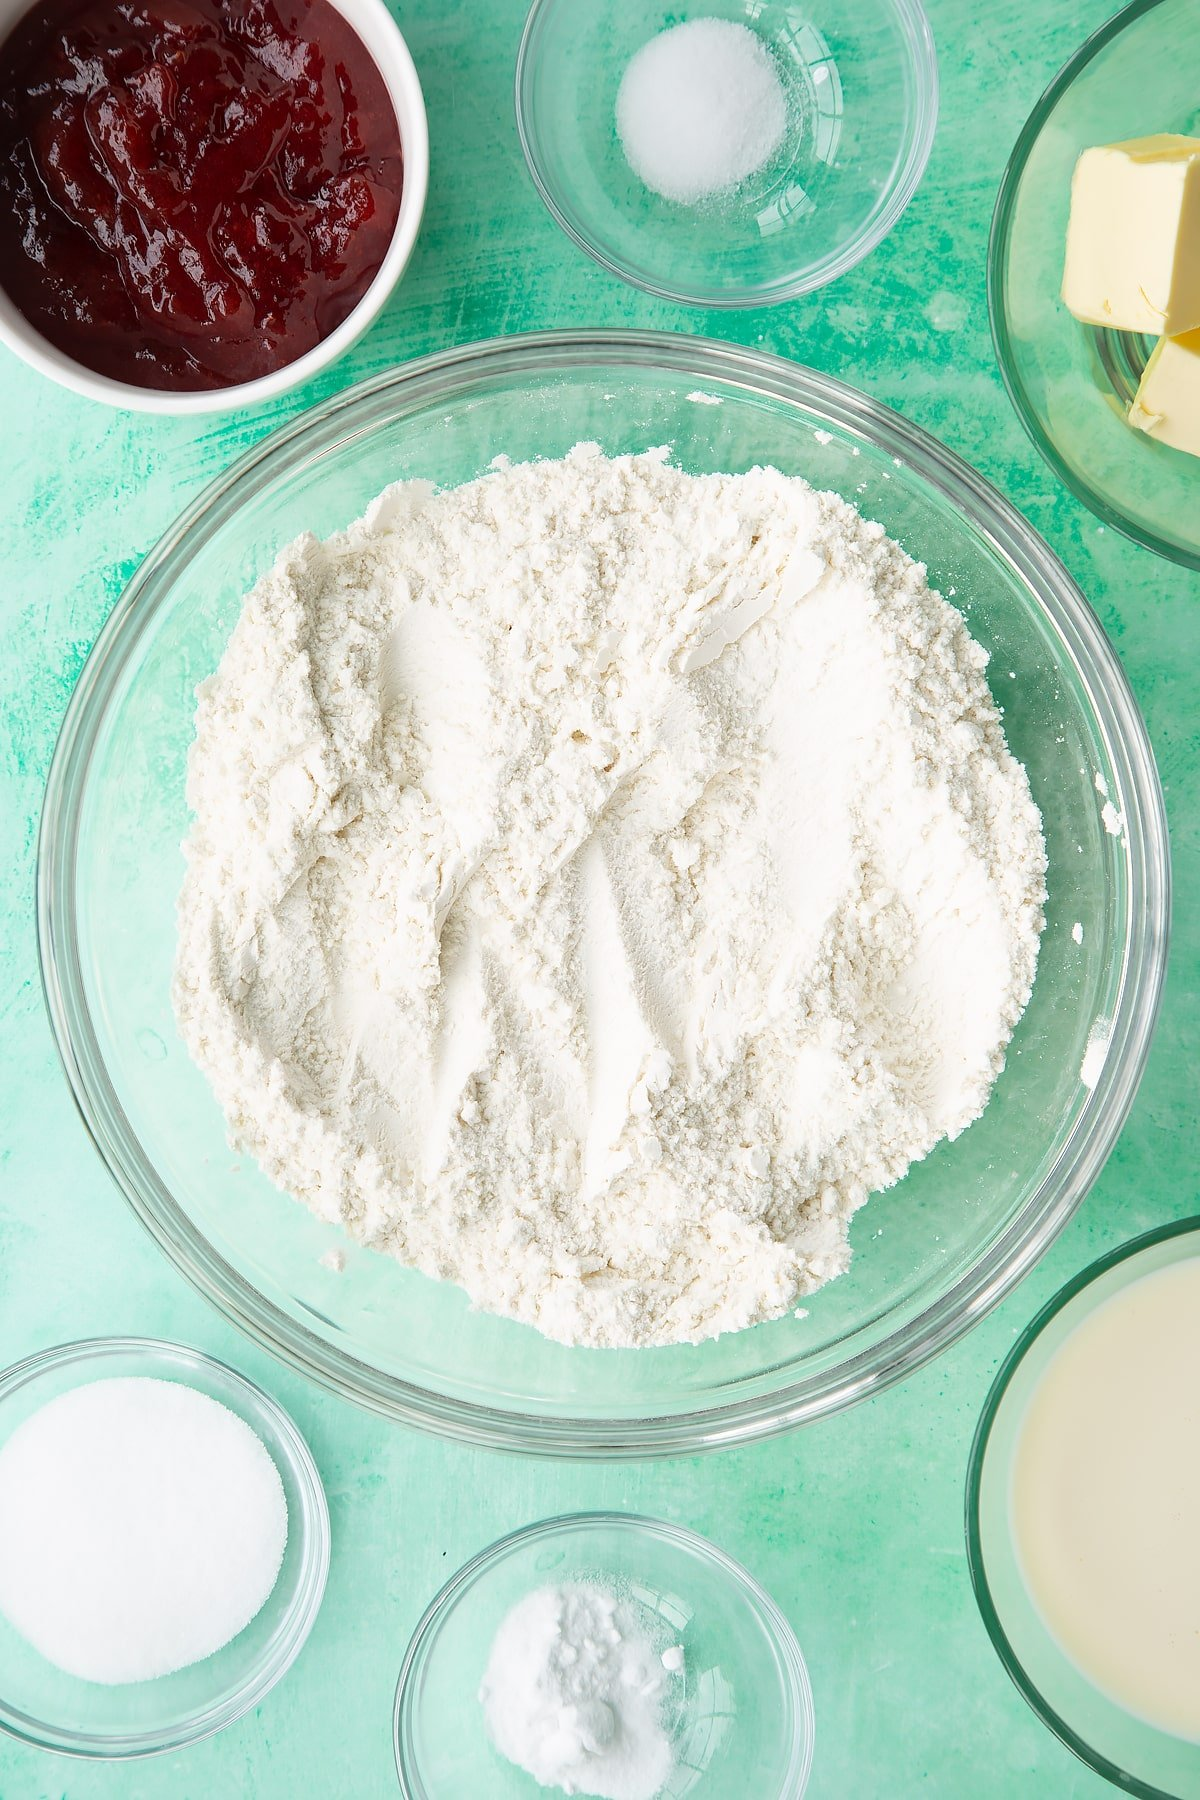 Flour, sugar, salt and bicarbonate of soda mixed together in a bowl. Ingredients to make dairy free scones surround the bowl.